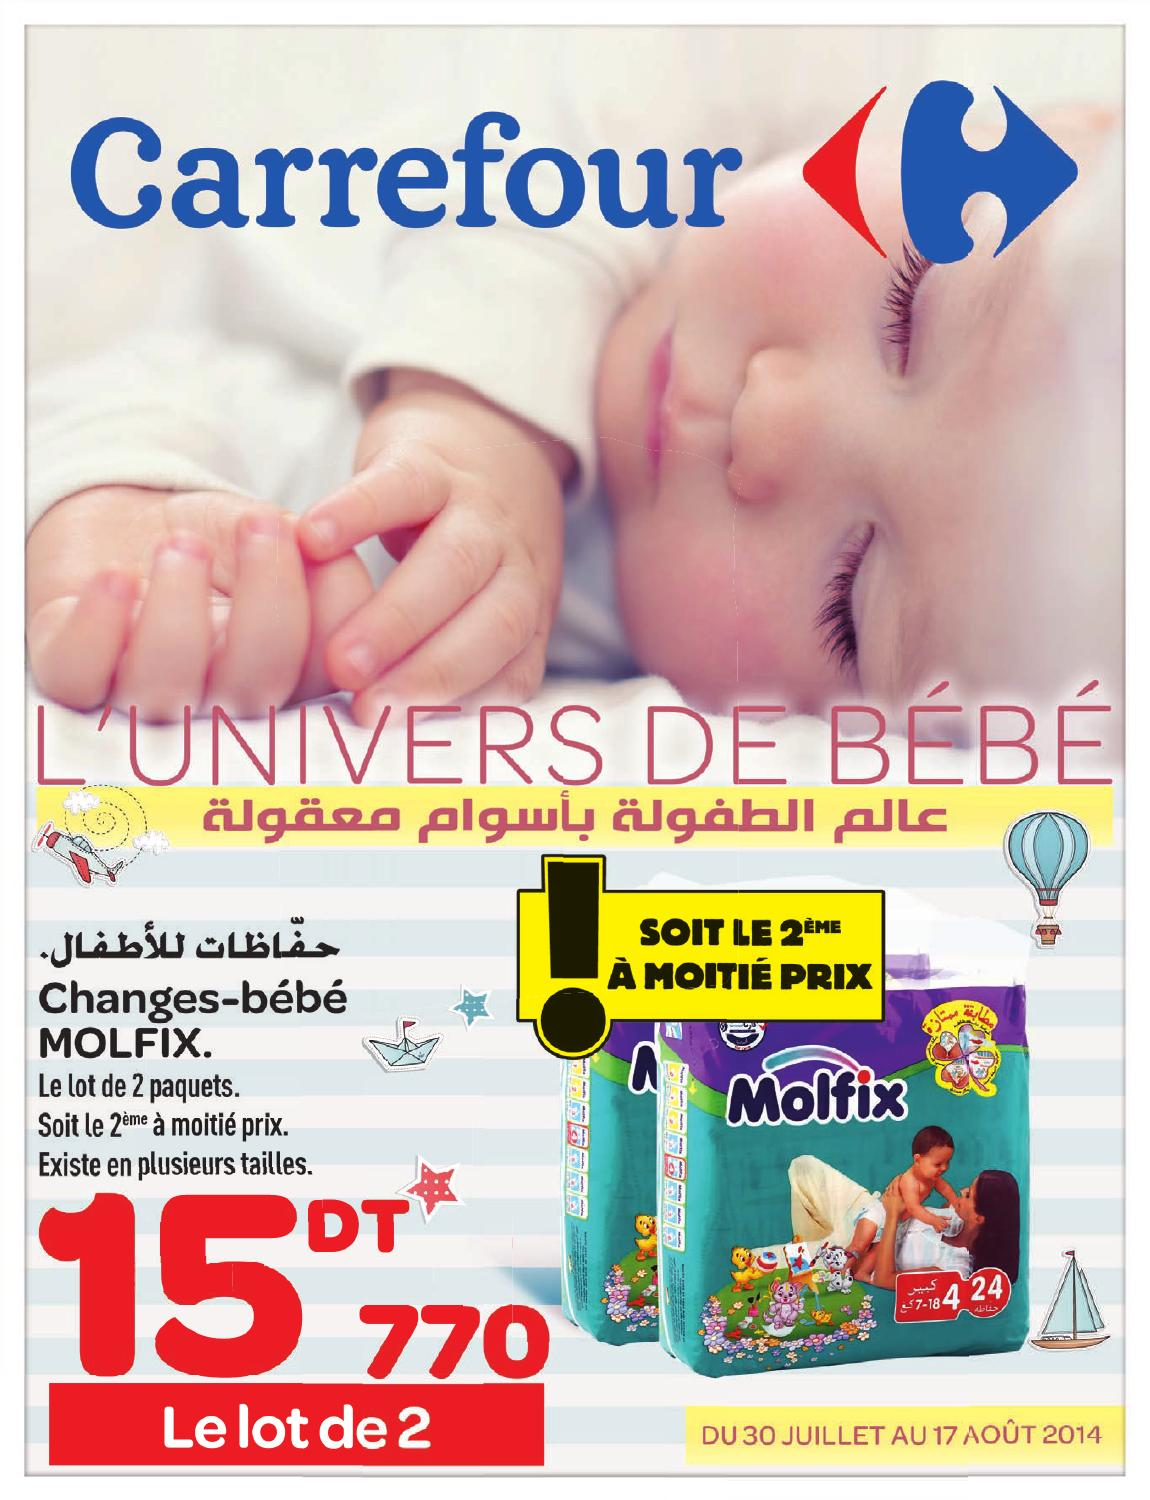 Catalogue Carrefour Puériculture 2014 By Carrefour Tunisie